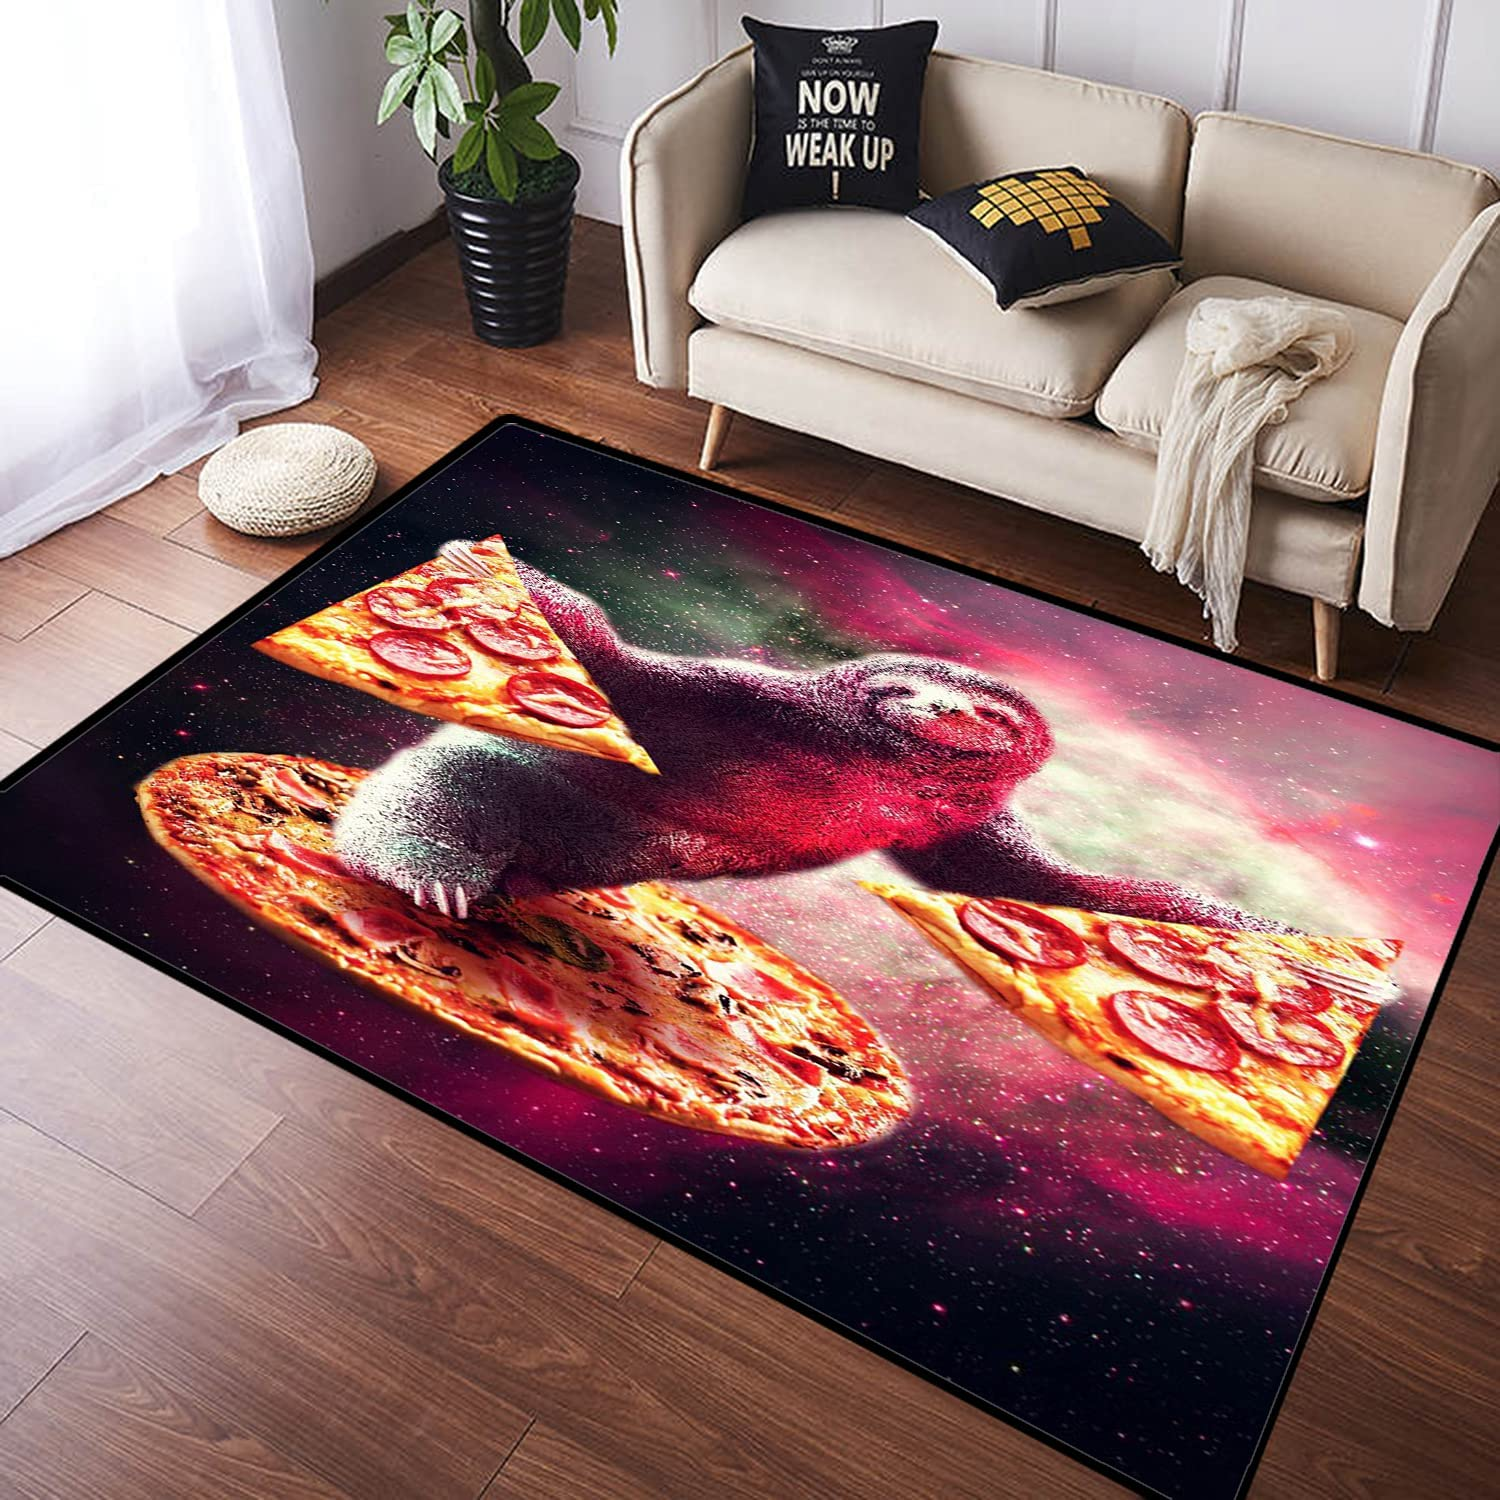 GUVICINIR Modern Area Our shop OFFers the best service Deluxe Rug Large Floor Cartoon in Mat Color Sloth